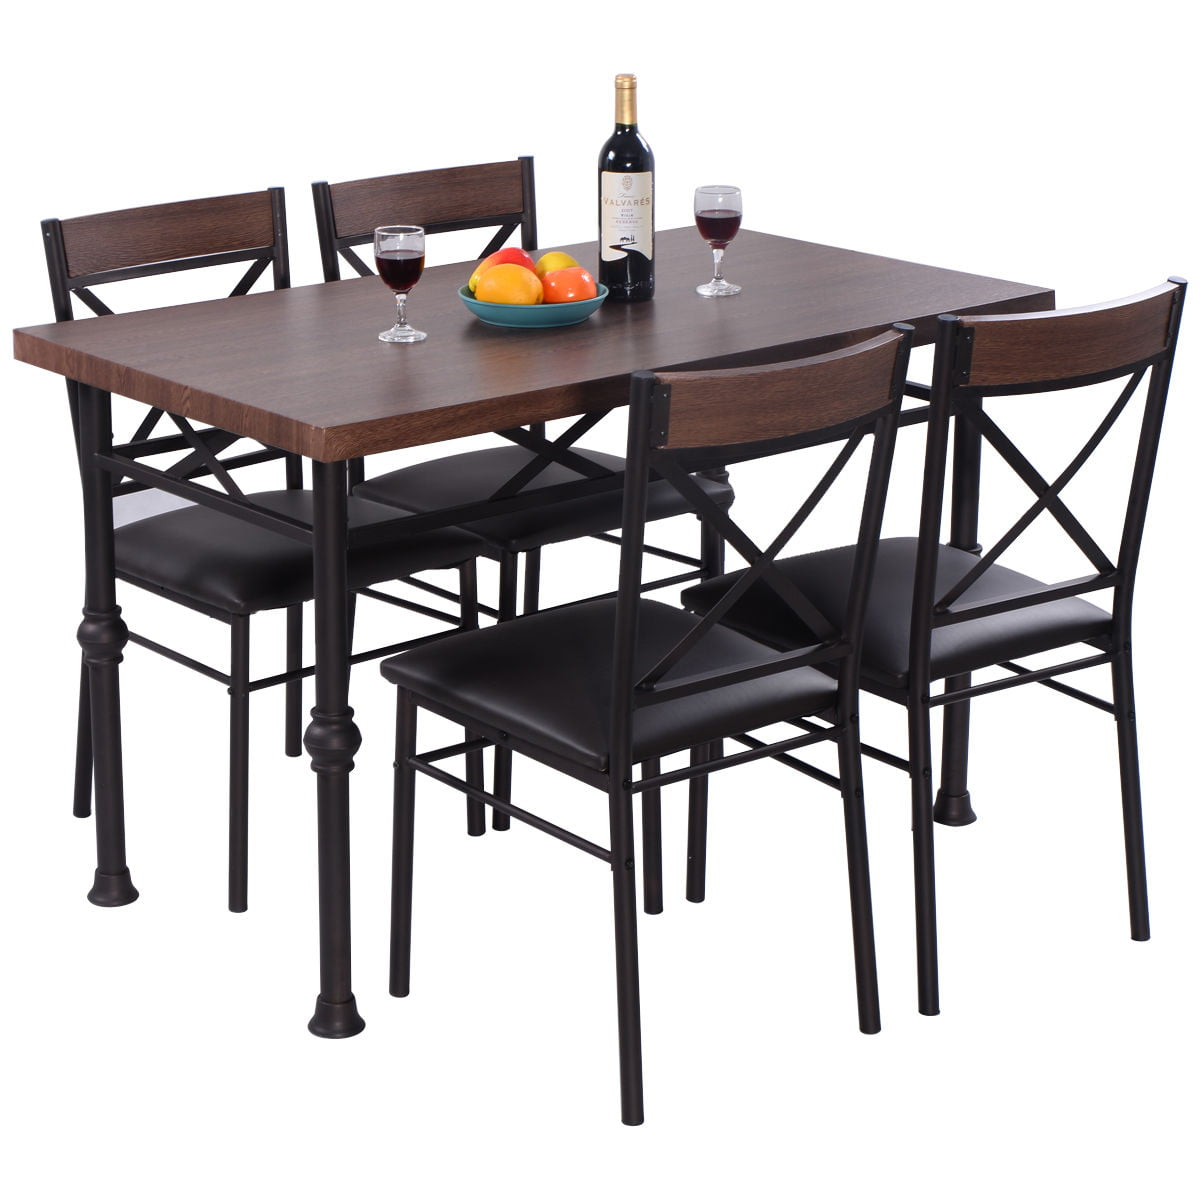 Costway 5 Piece Dining Set Table And 4 Chairs Wood Metal